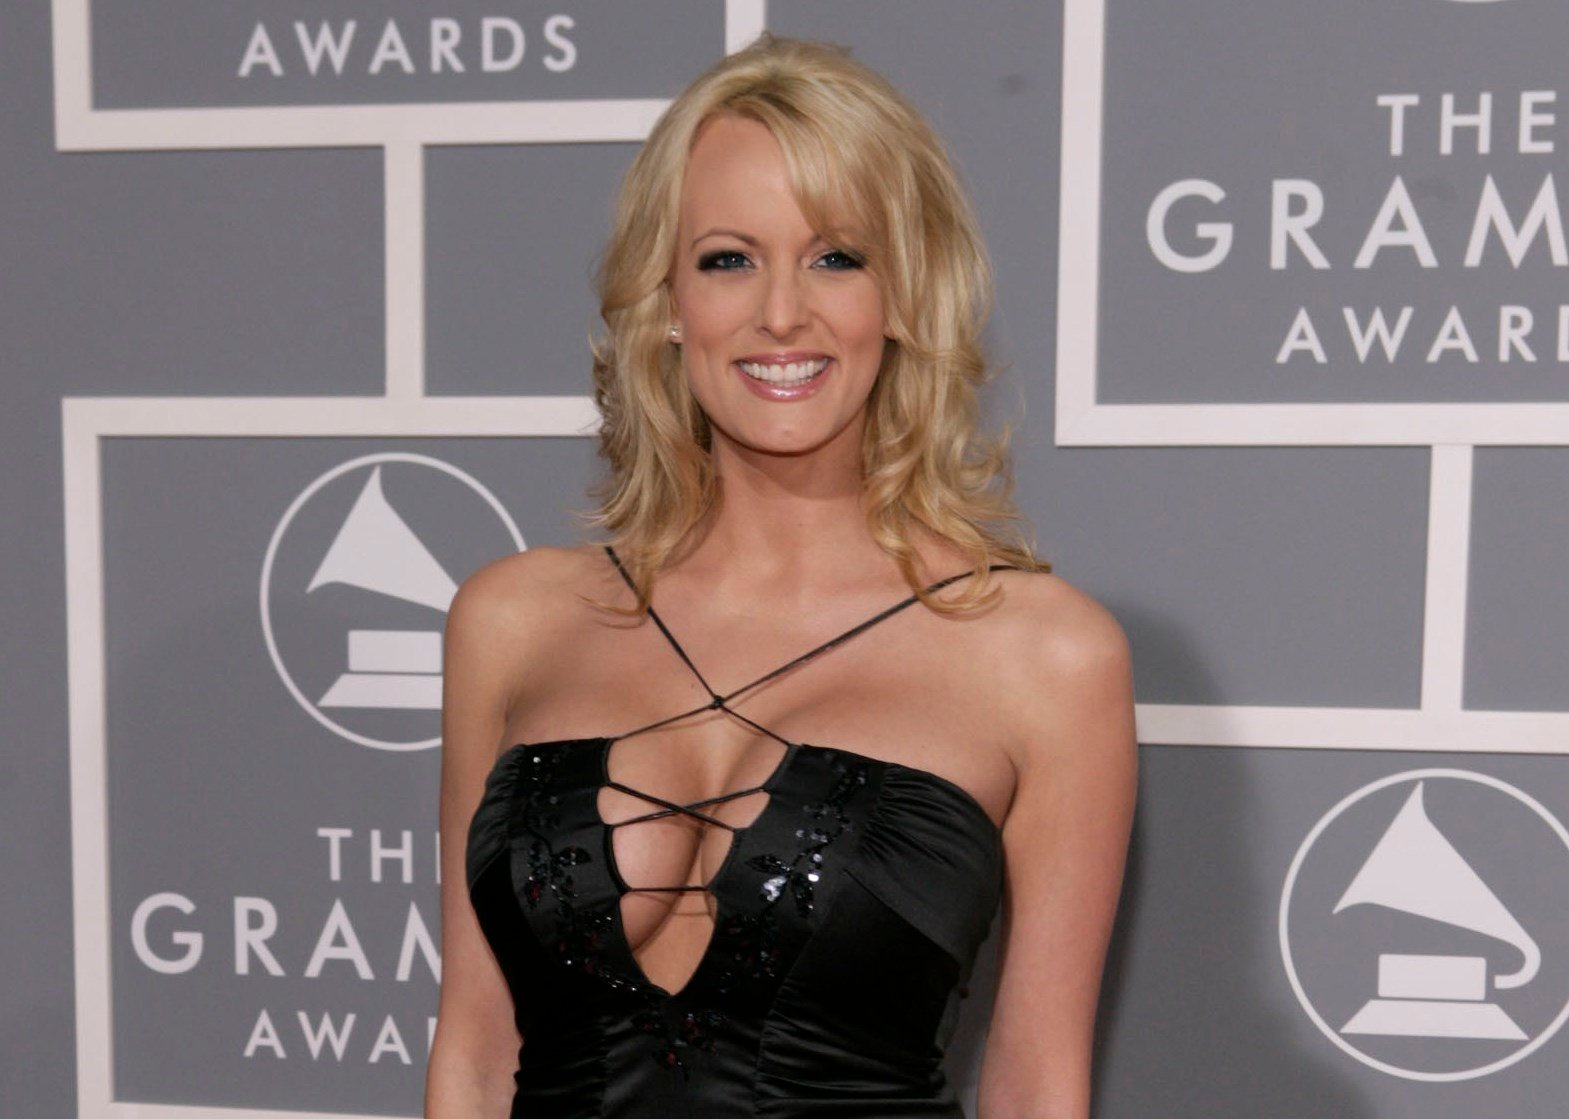 Trump lawyers seek $20m in damages from porn star Stormy